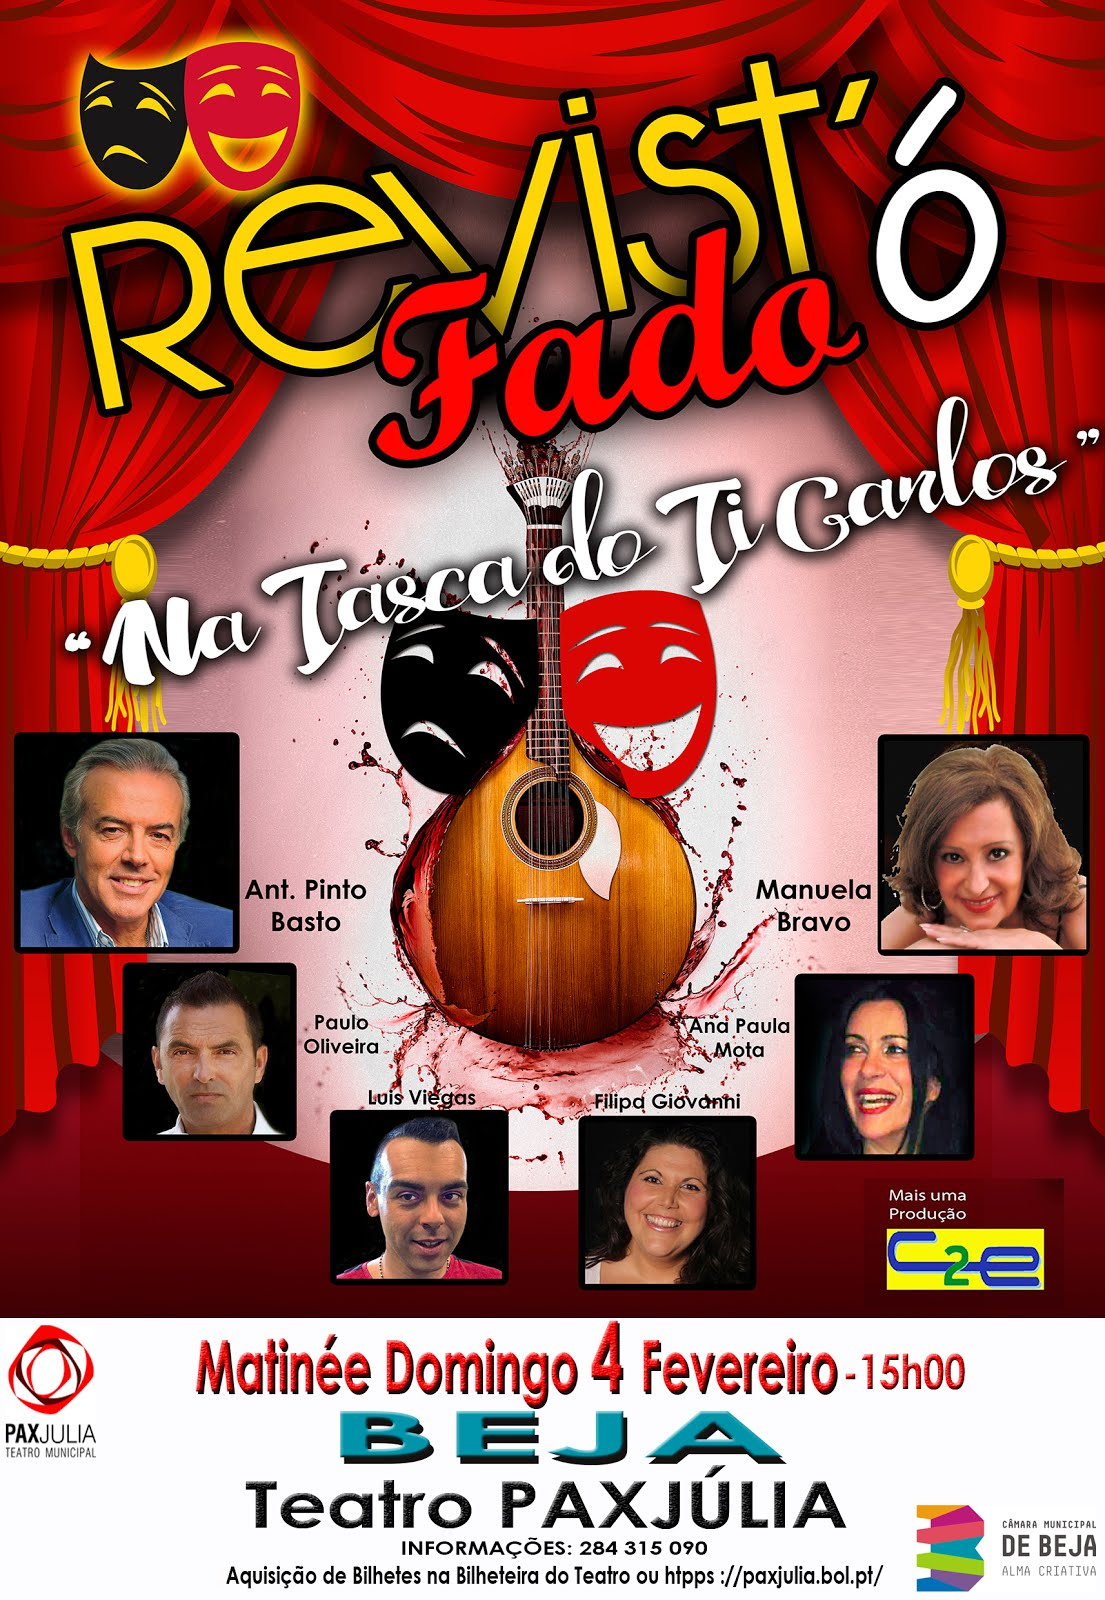 REVIST' Ó FADO - NA TASCA DO TI CARLOS